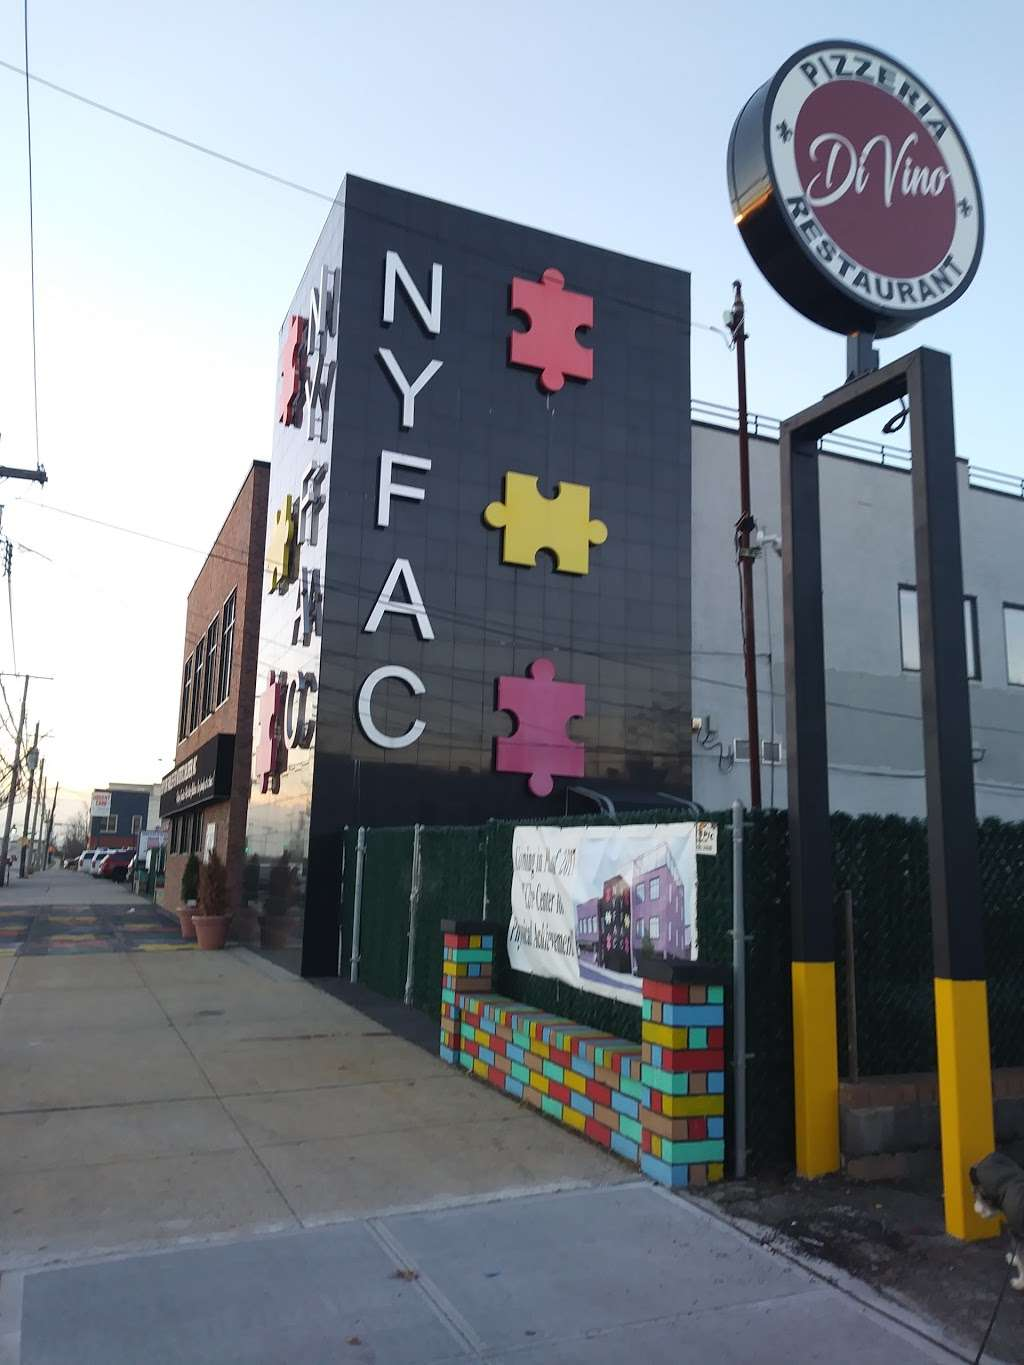 New York Families For Autistic Children - school  | Photo 2 of 2 | Address: 164-14 Cross Bay Blvd, Howard Beach, NY 11414, USA | Phone: (347) 566-3122